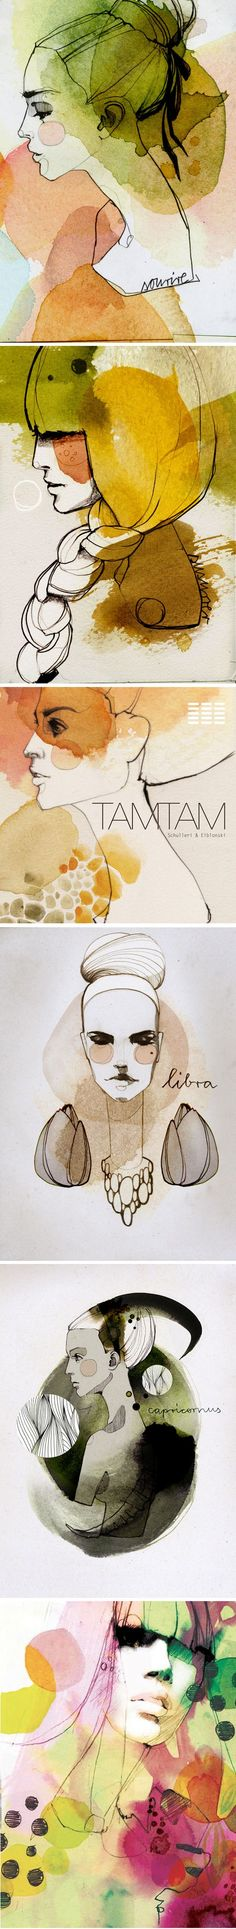 Illustrations par Ekaterina Koroleva Beautiful watercolors I am in awe of the work of Ekaterina Koroleva, graphic designer and illustrator based in Berlin. She loves fashion illustration, hence an omn Watercolor Face, Watercolor Design, Watercolor Portraits, Watercolor Paintings, Inspiration Art, Art Inspo, Collage Kunst, Art Et Illustration, Art Illustrations